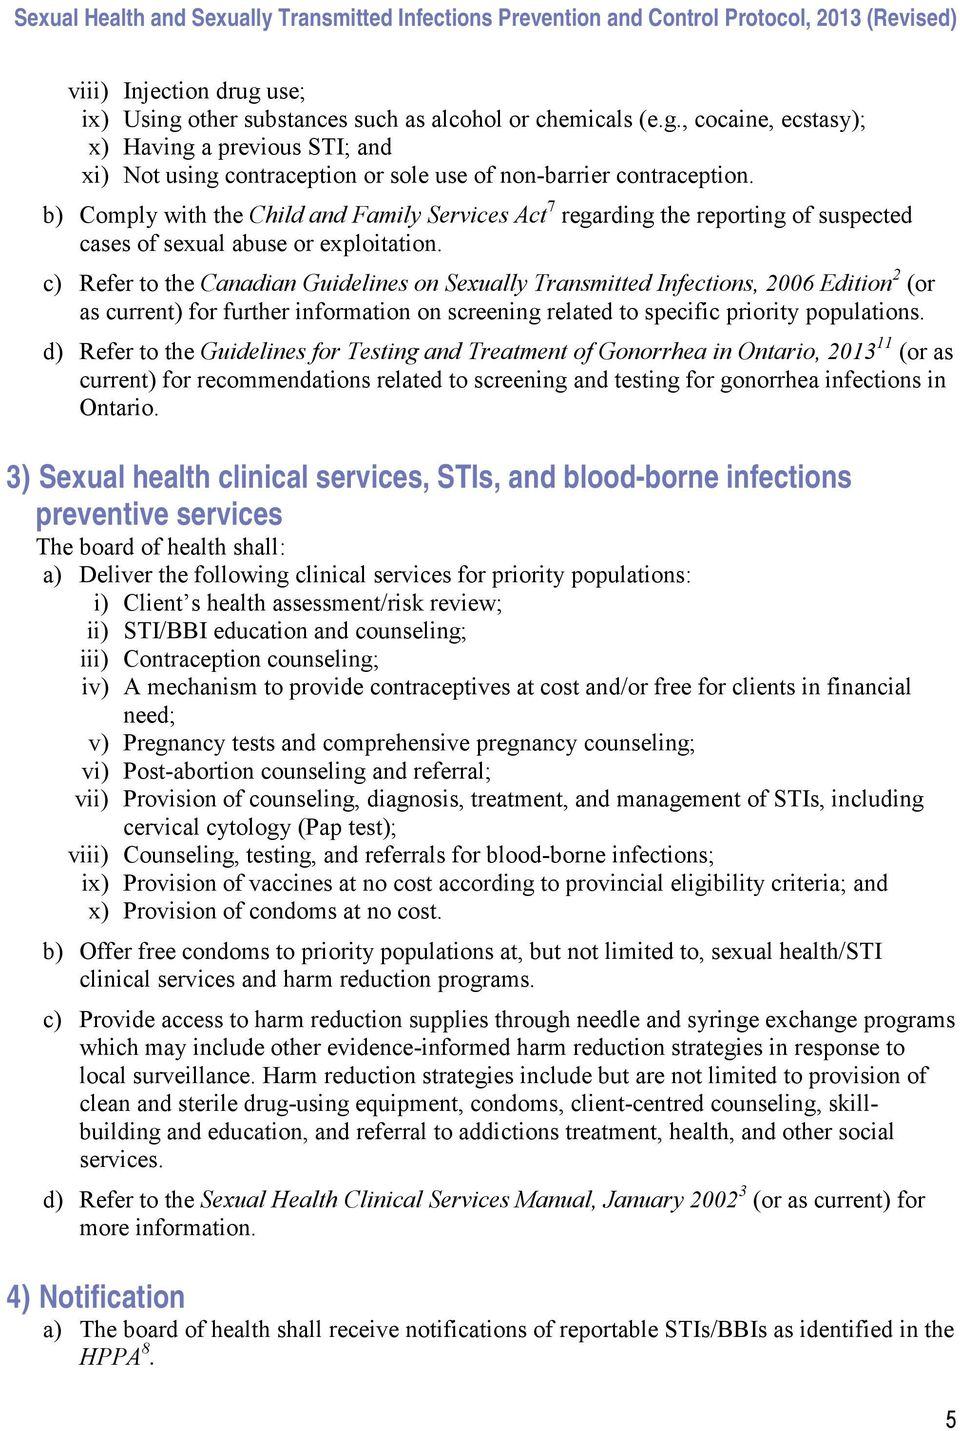 c) Refer to the Canadian Guidelines on Sexually Transmitted Infections, 2006 Edition 2 (or as current) for further information on screening related to specific priority populations.